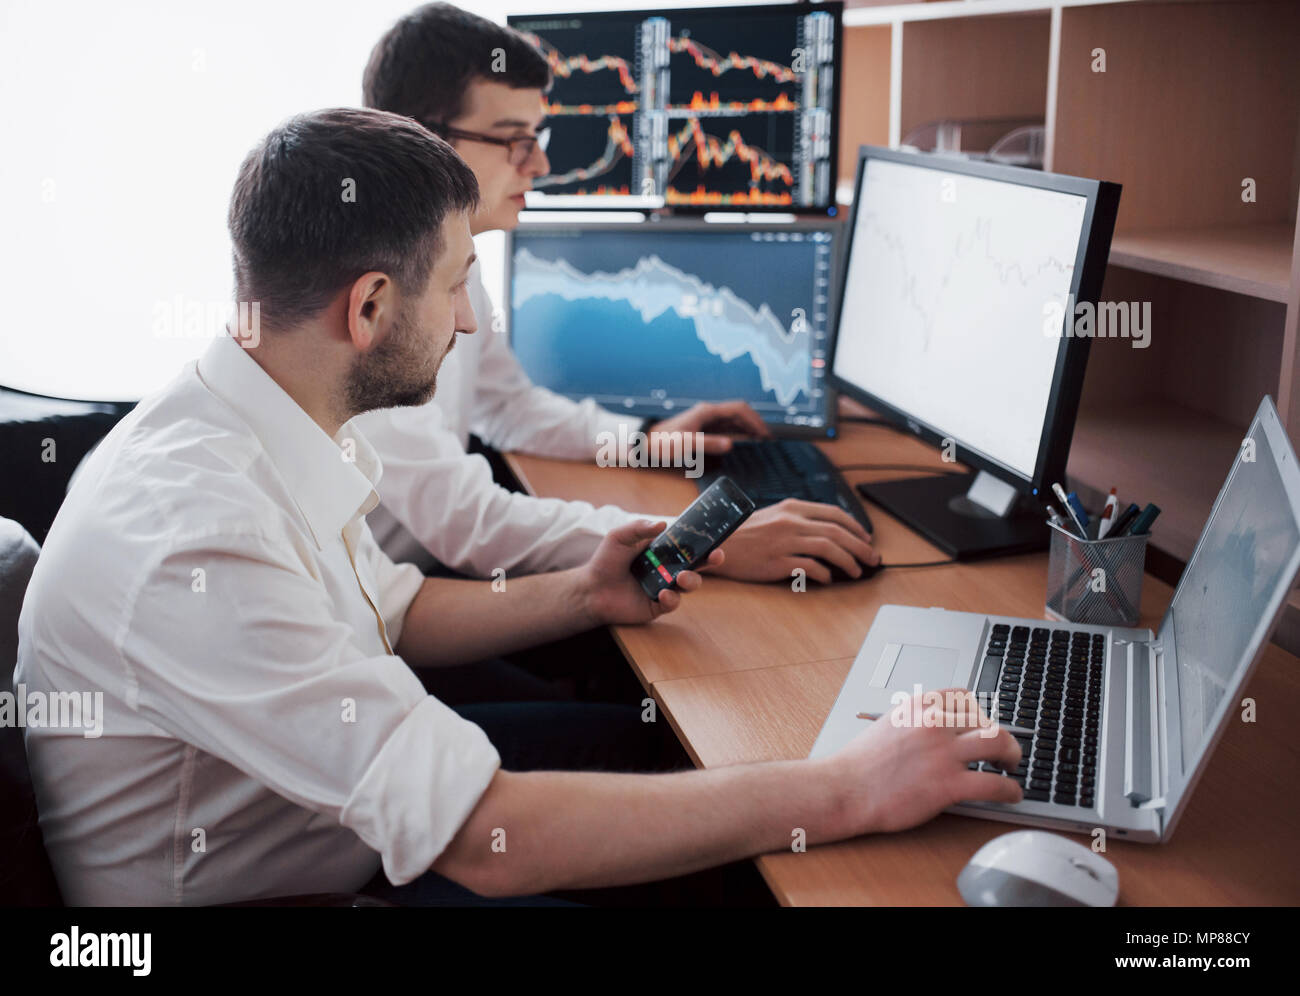 Businessmen trading stocks online. Stock brokers looking at graphs, indexes and numbers on multiple computer screens. Colleagues in discussion in traders office. Business success concept - Stock Image